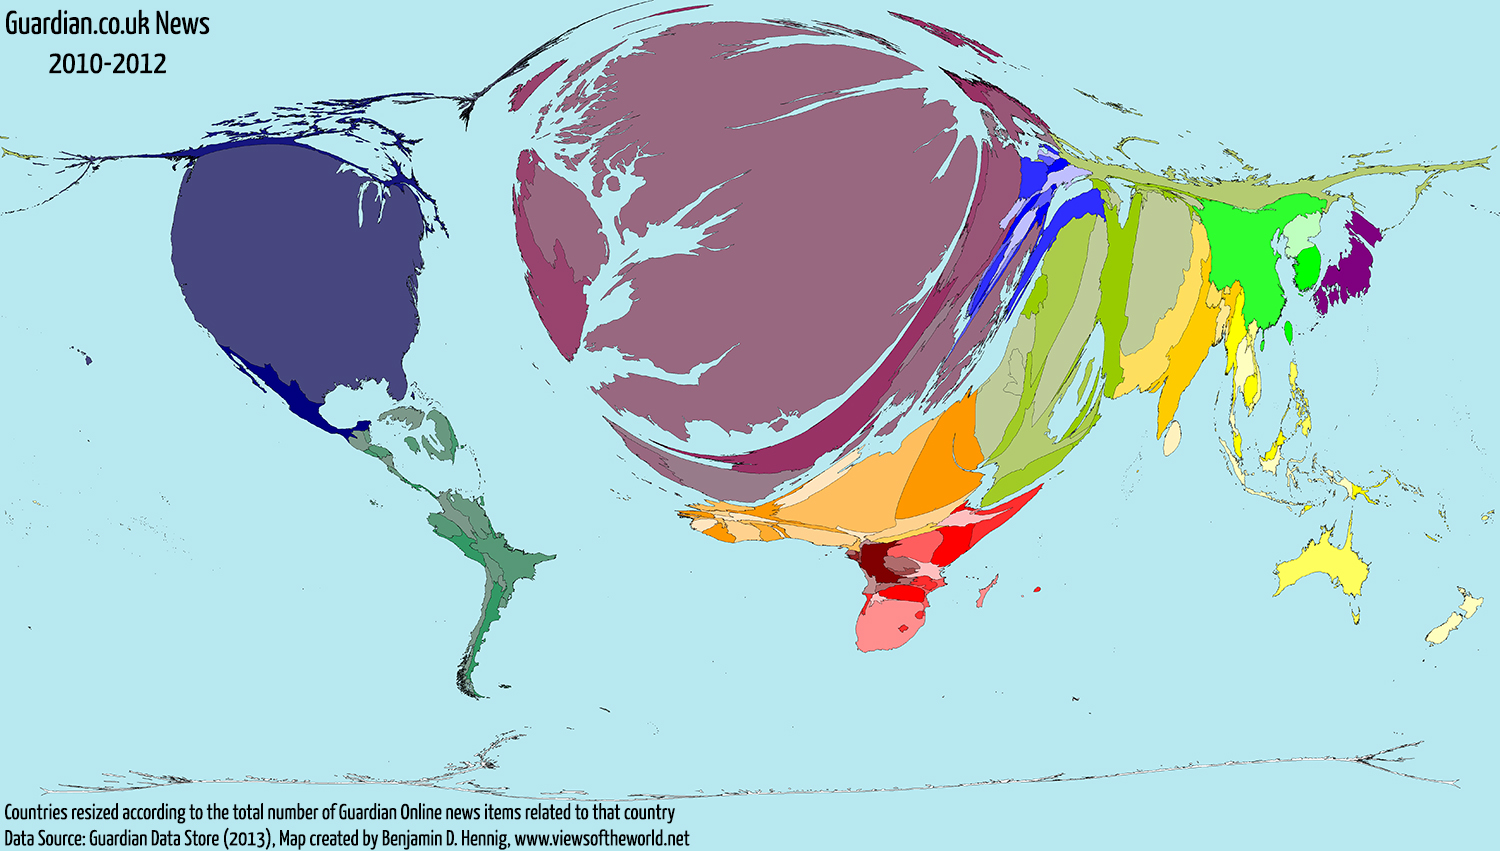 Map / Cartogram of Global Guardian Online News Coverage 2010 to 2012